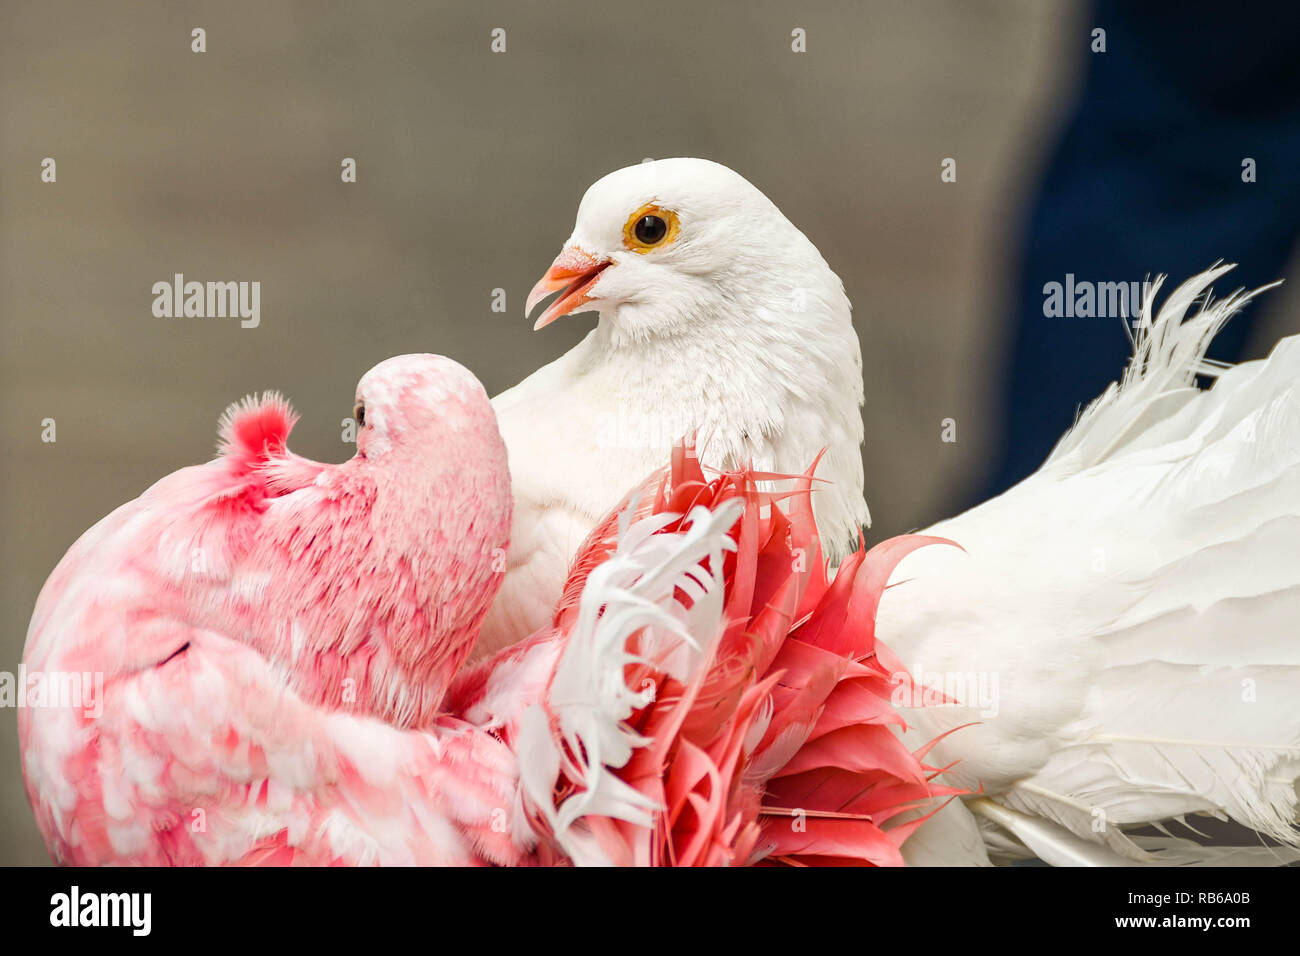 Love Birds High Resolution Stock Photography And Images Alamy